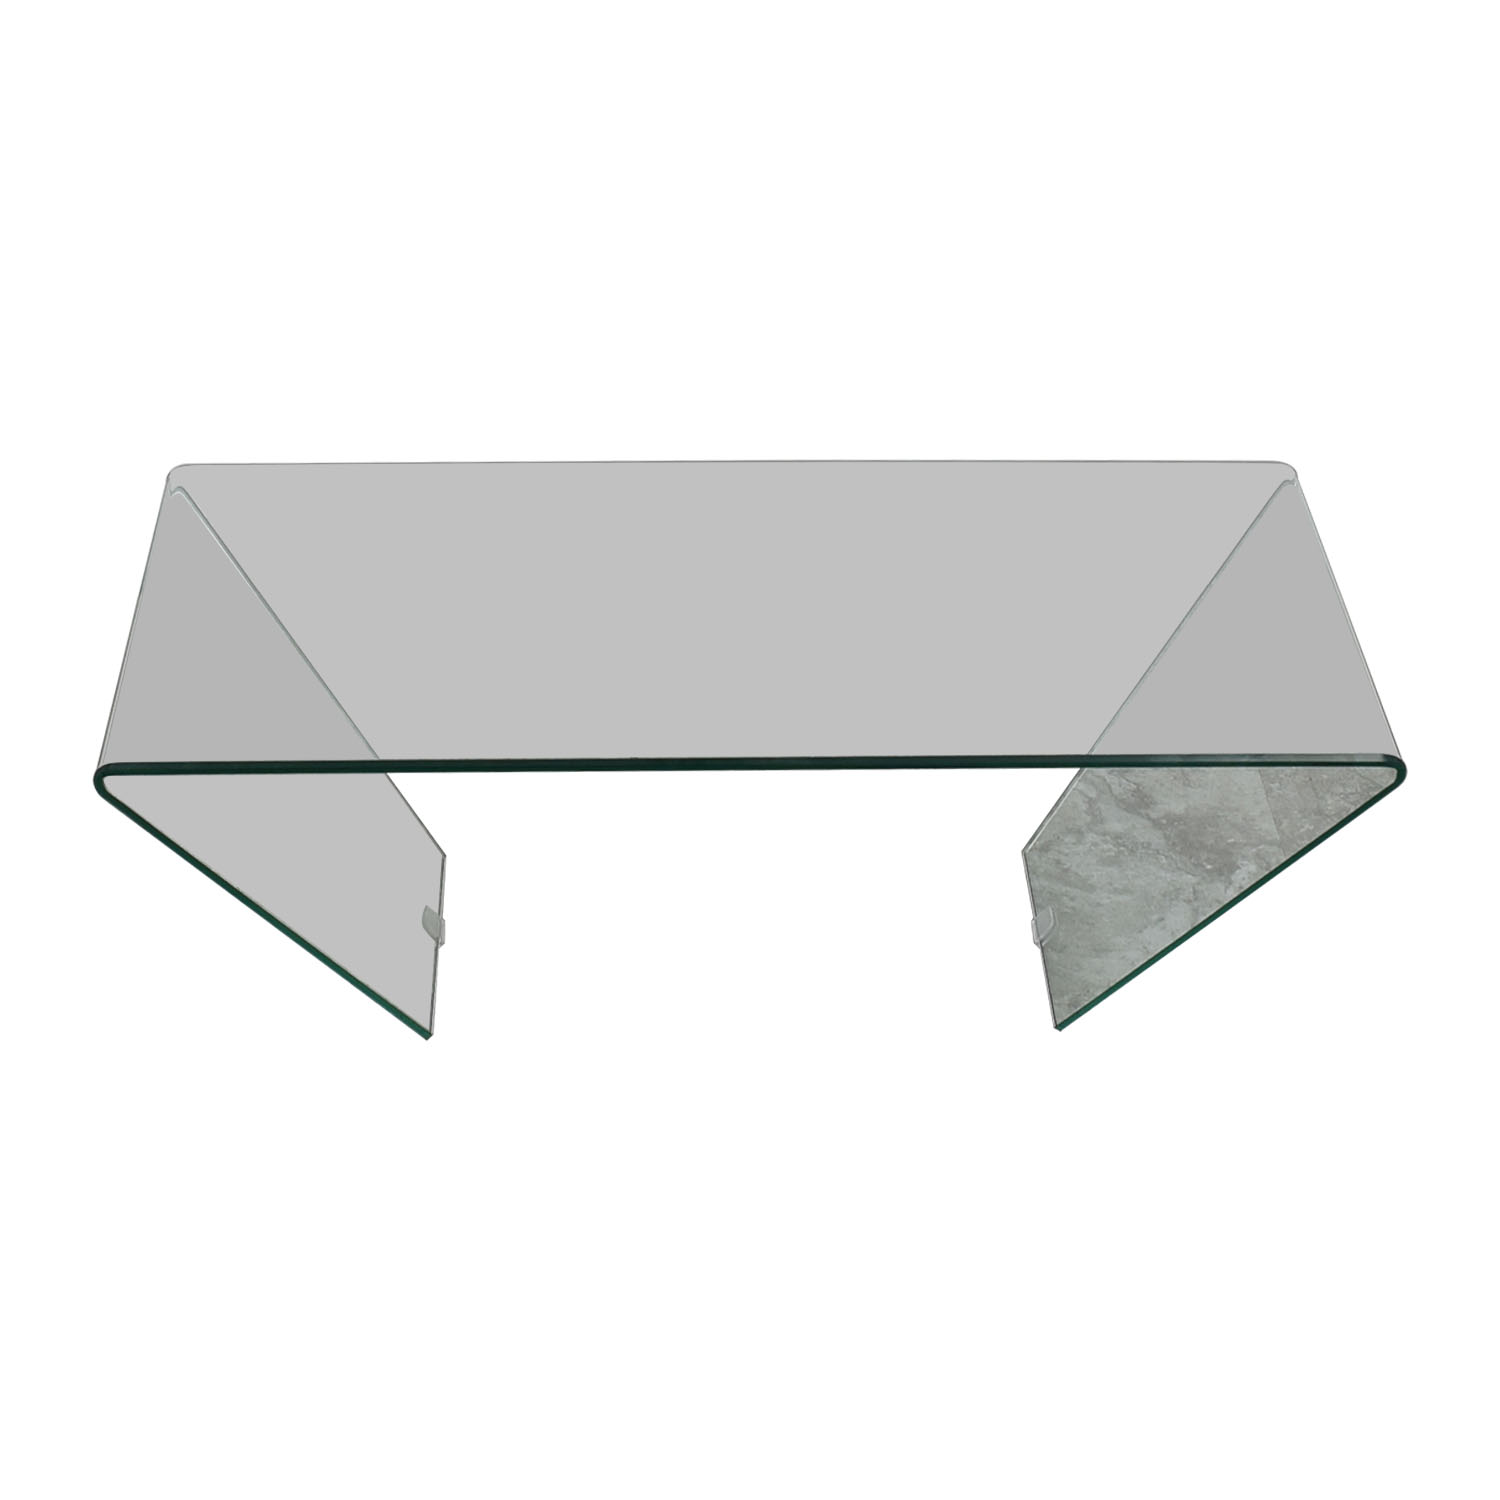 J & M Furniture J & M Furniture Bent Clear Glass Coffee Table